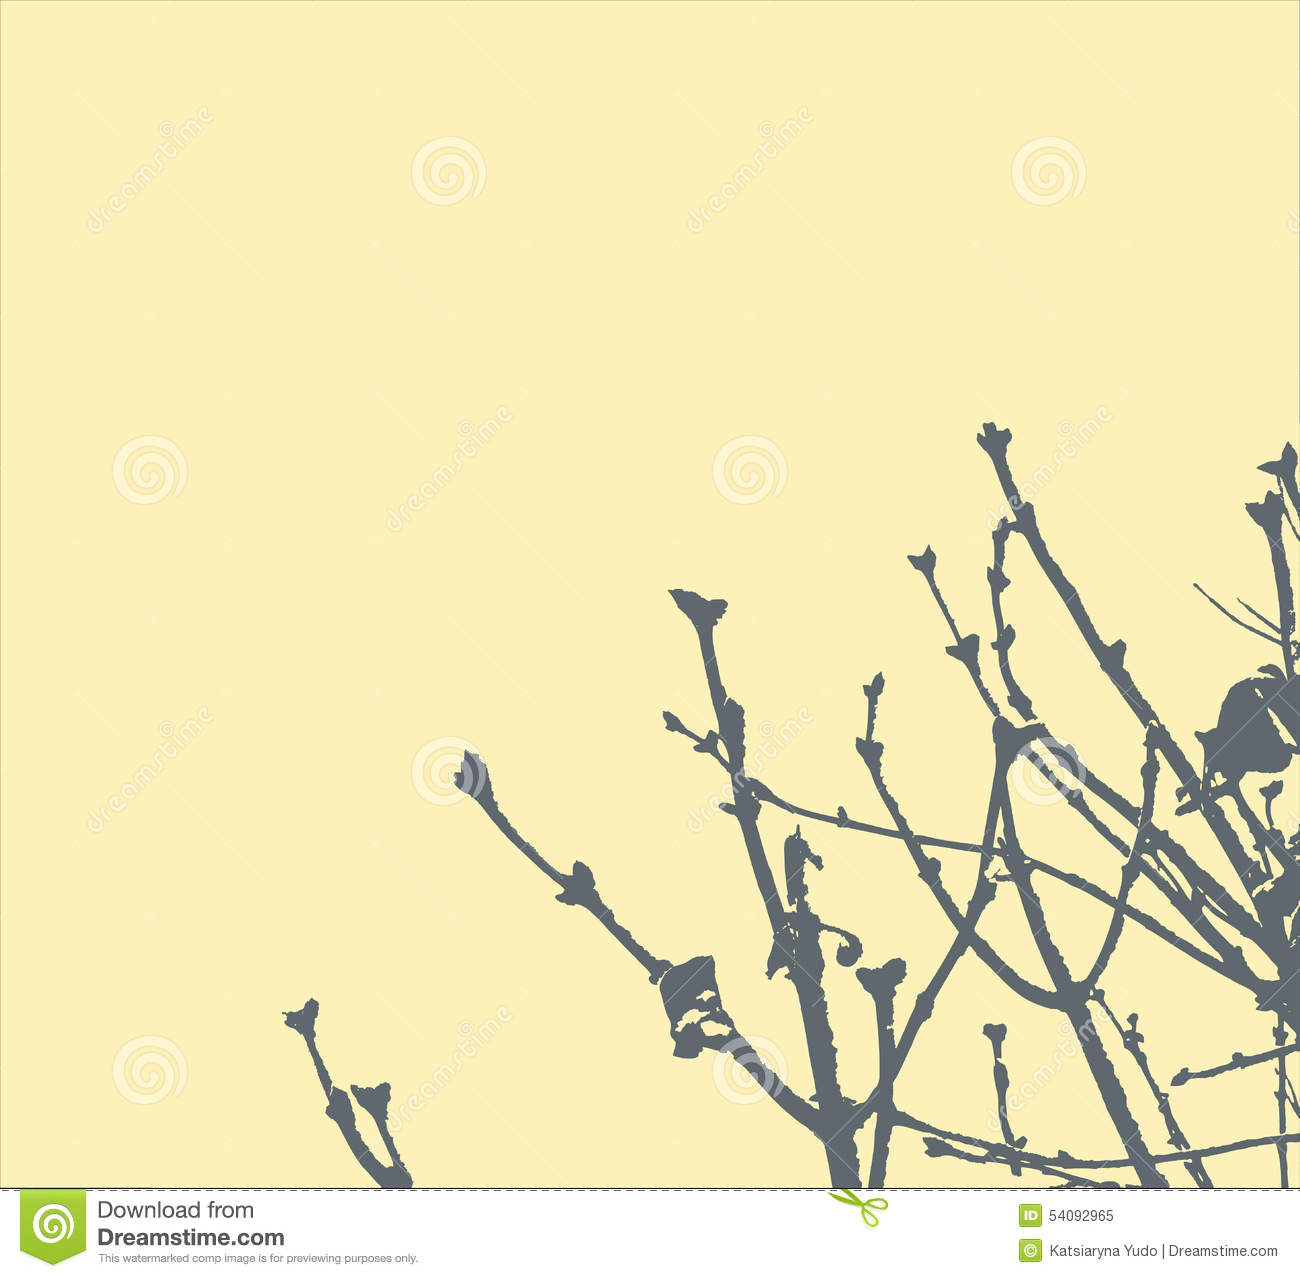 Tree branches on light yellow background